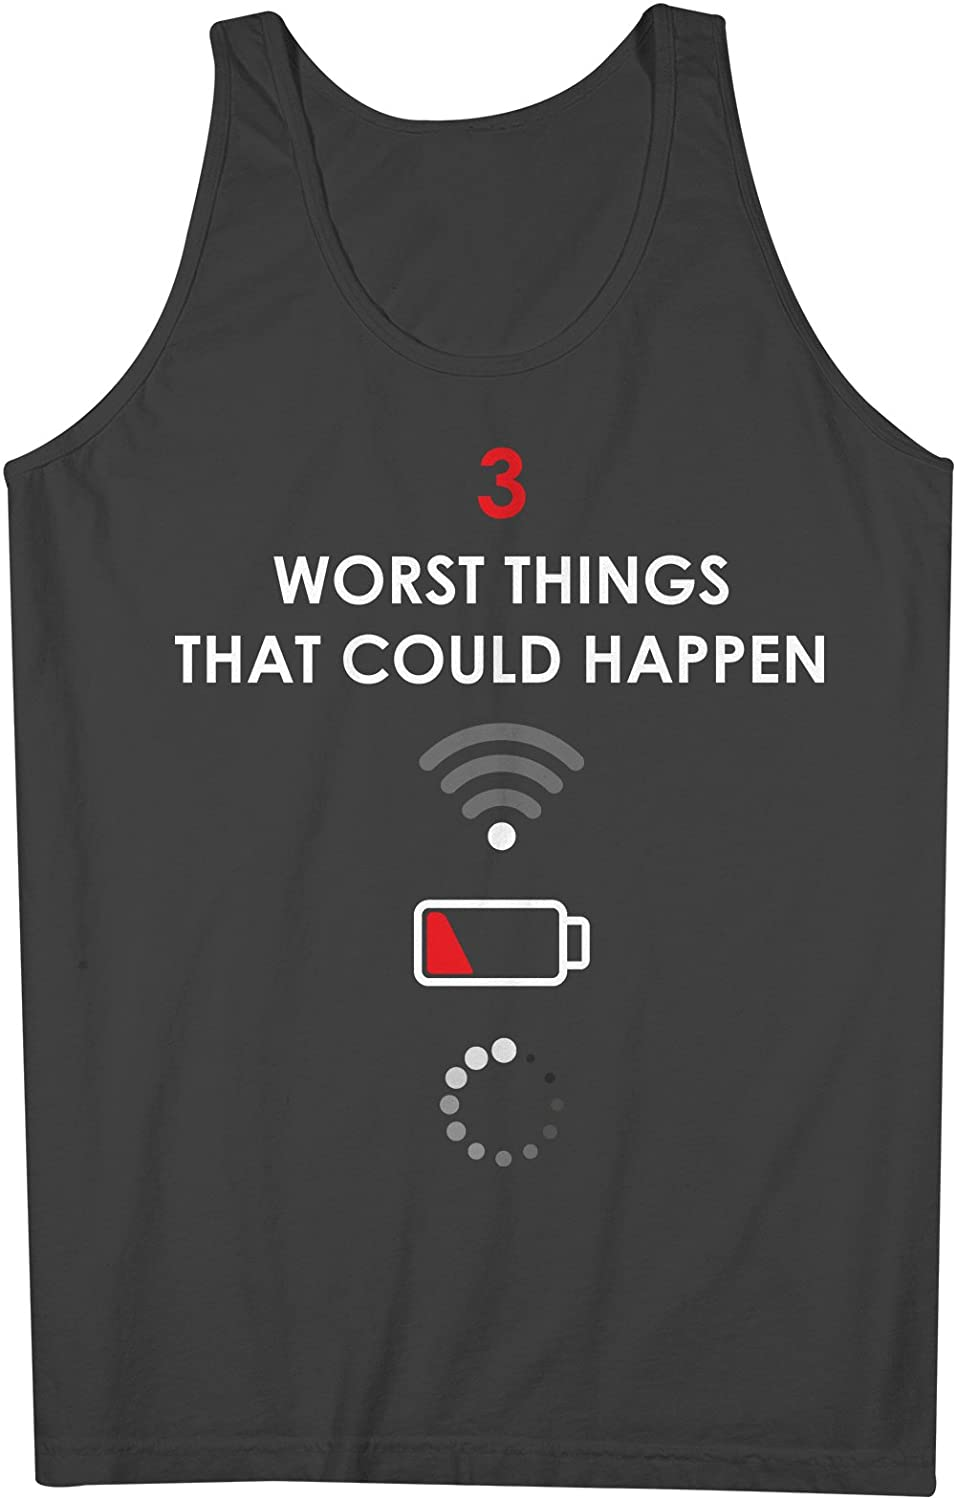 Worst Things That Could Happen おかしいです Computer IT Geek 男性用 Tank Top Sleeveless Shirt